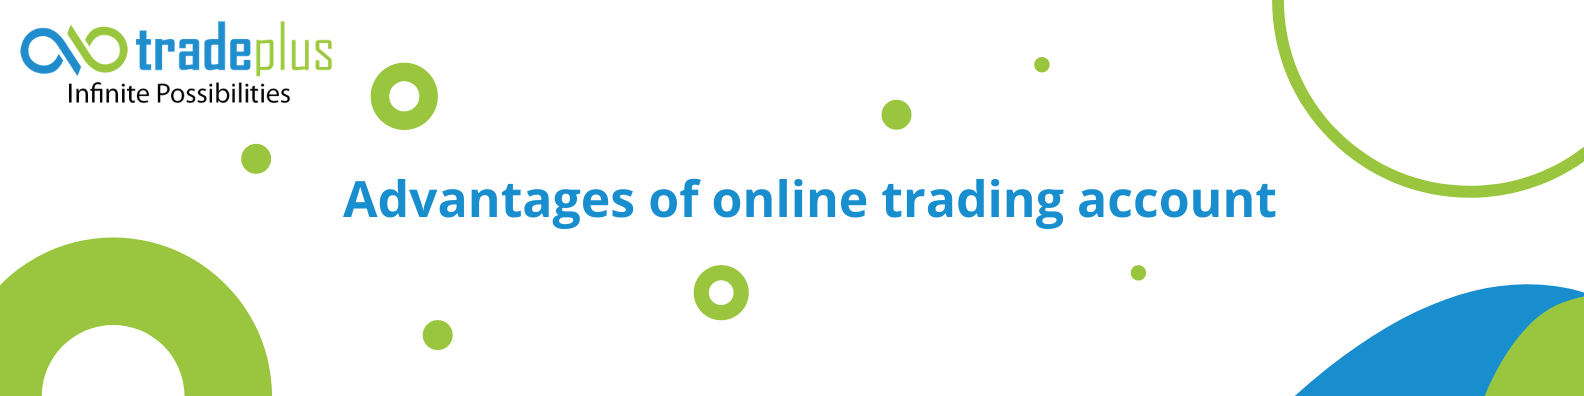 Blue and Yellow Technology LinkedIn Banner 2 Advantages of online trading account